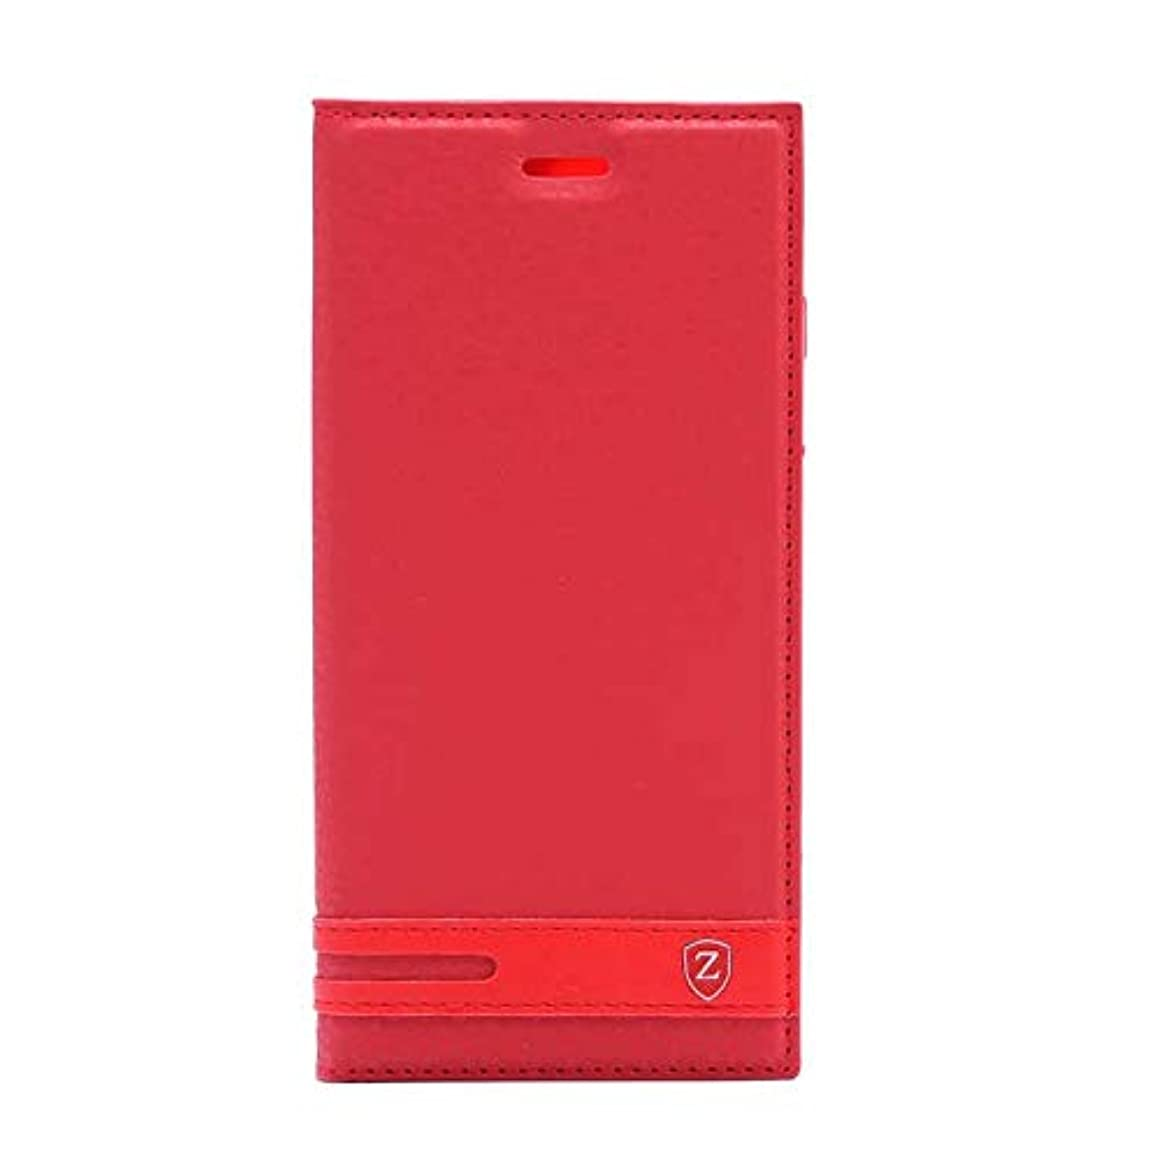 Teleplus for Samsung Galaxy J7 Duo Magnet Clamshell Case Red + Nano Screen Protector